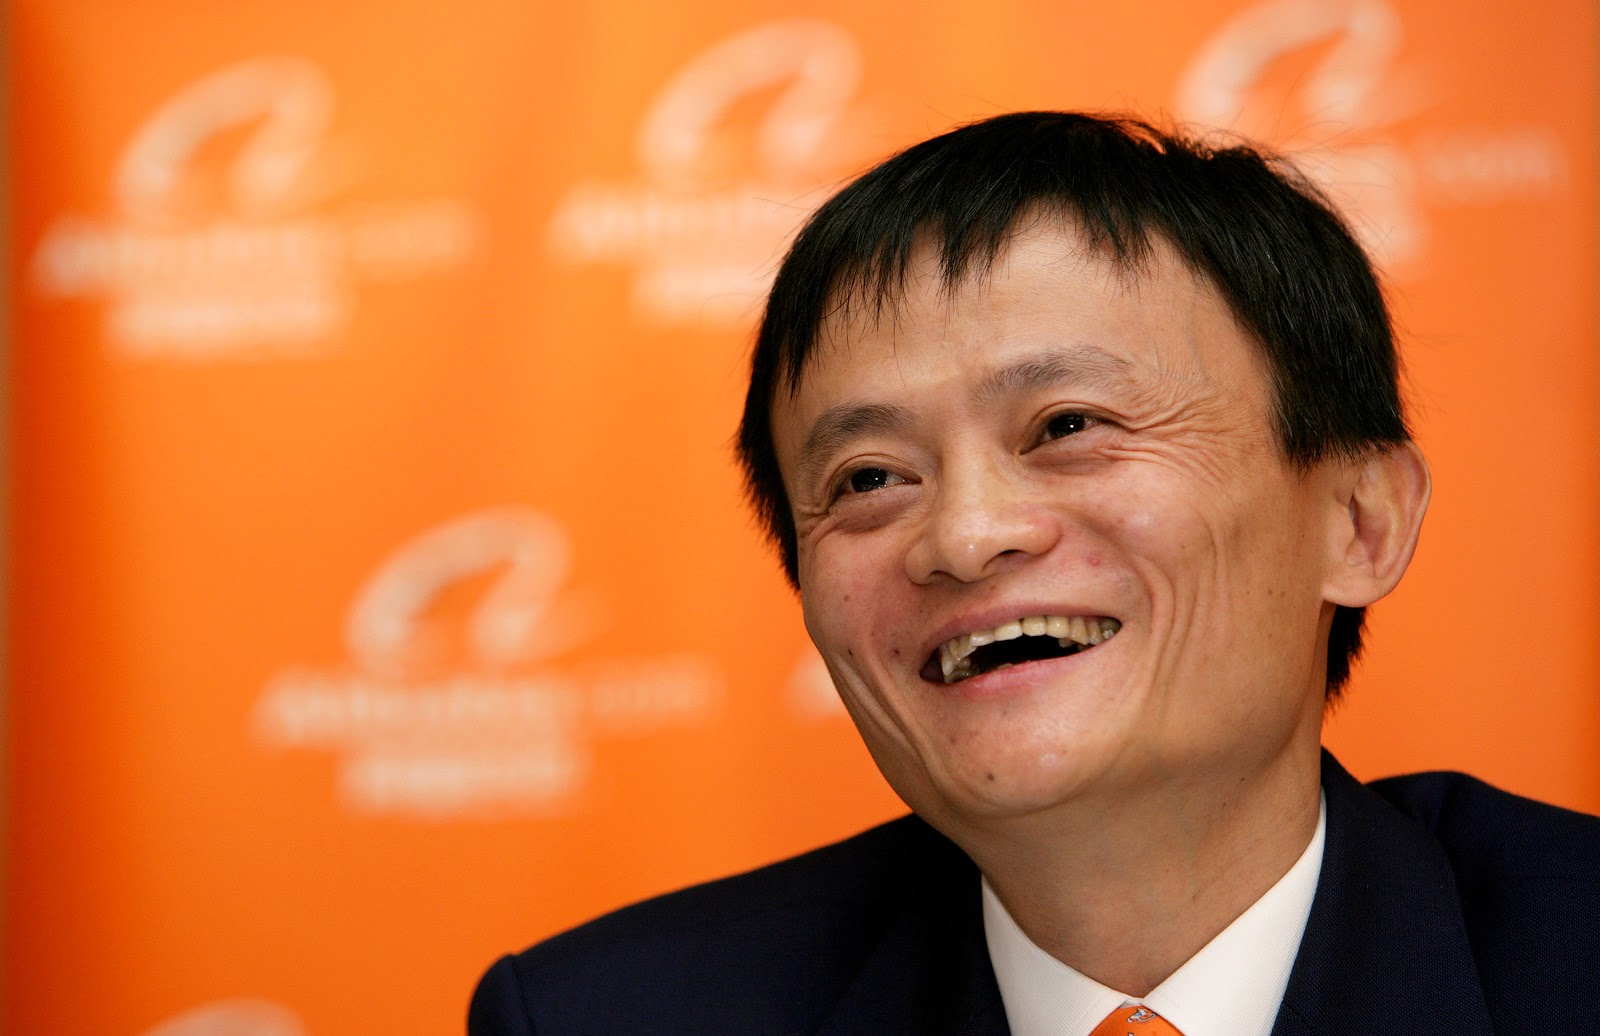 Story Behind Of Successful Entrepreneur Jack Ma Alibaba Group